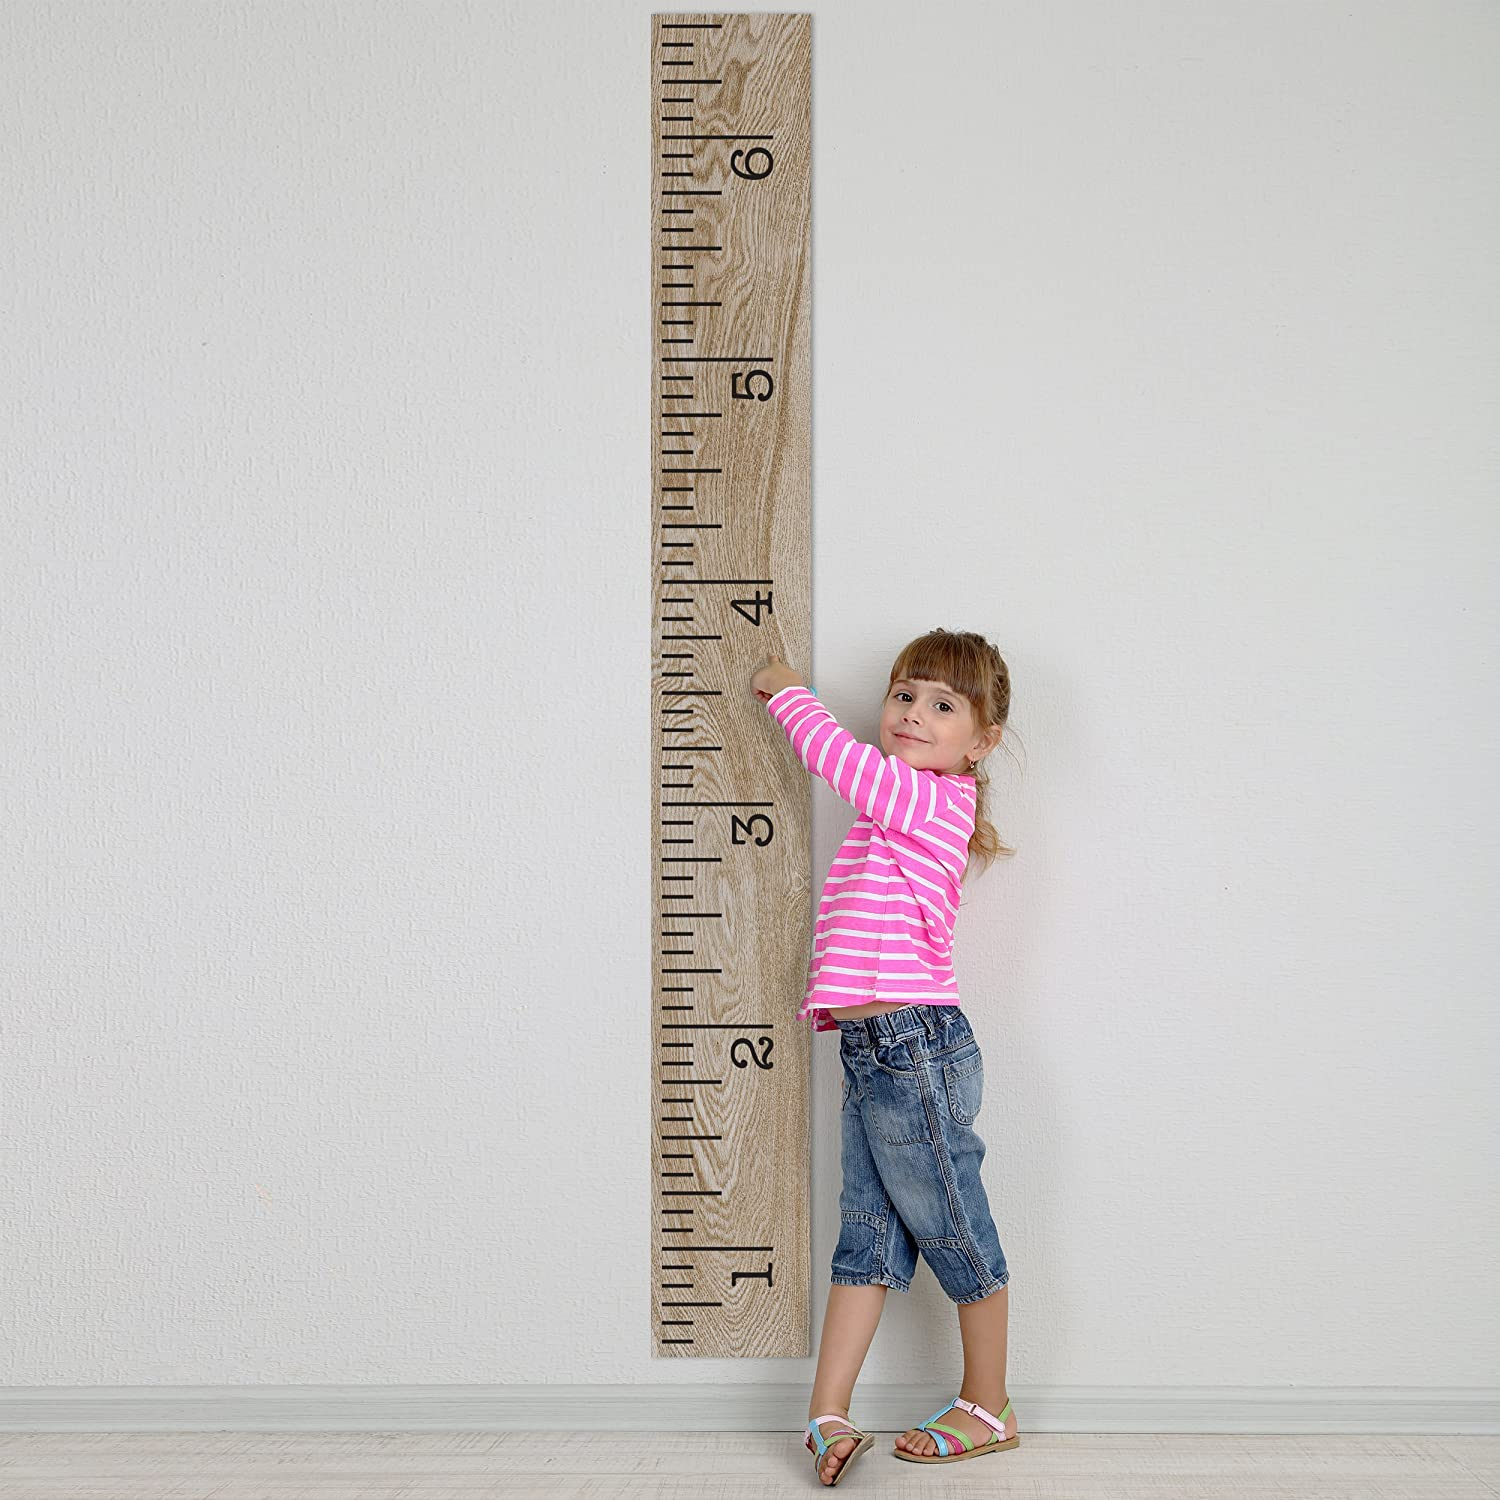 Kids growth chart decal stickers wall diy applications home decor product description full growth chart nvjuhfo Images